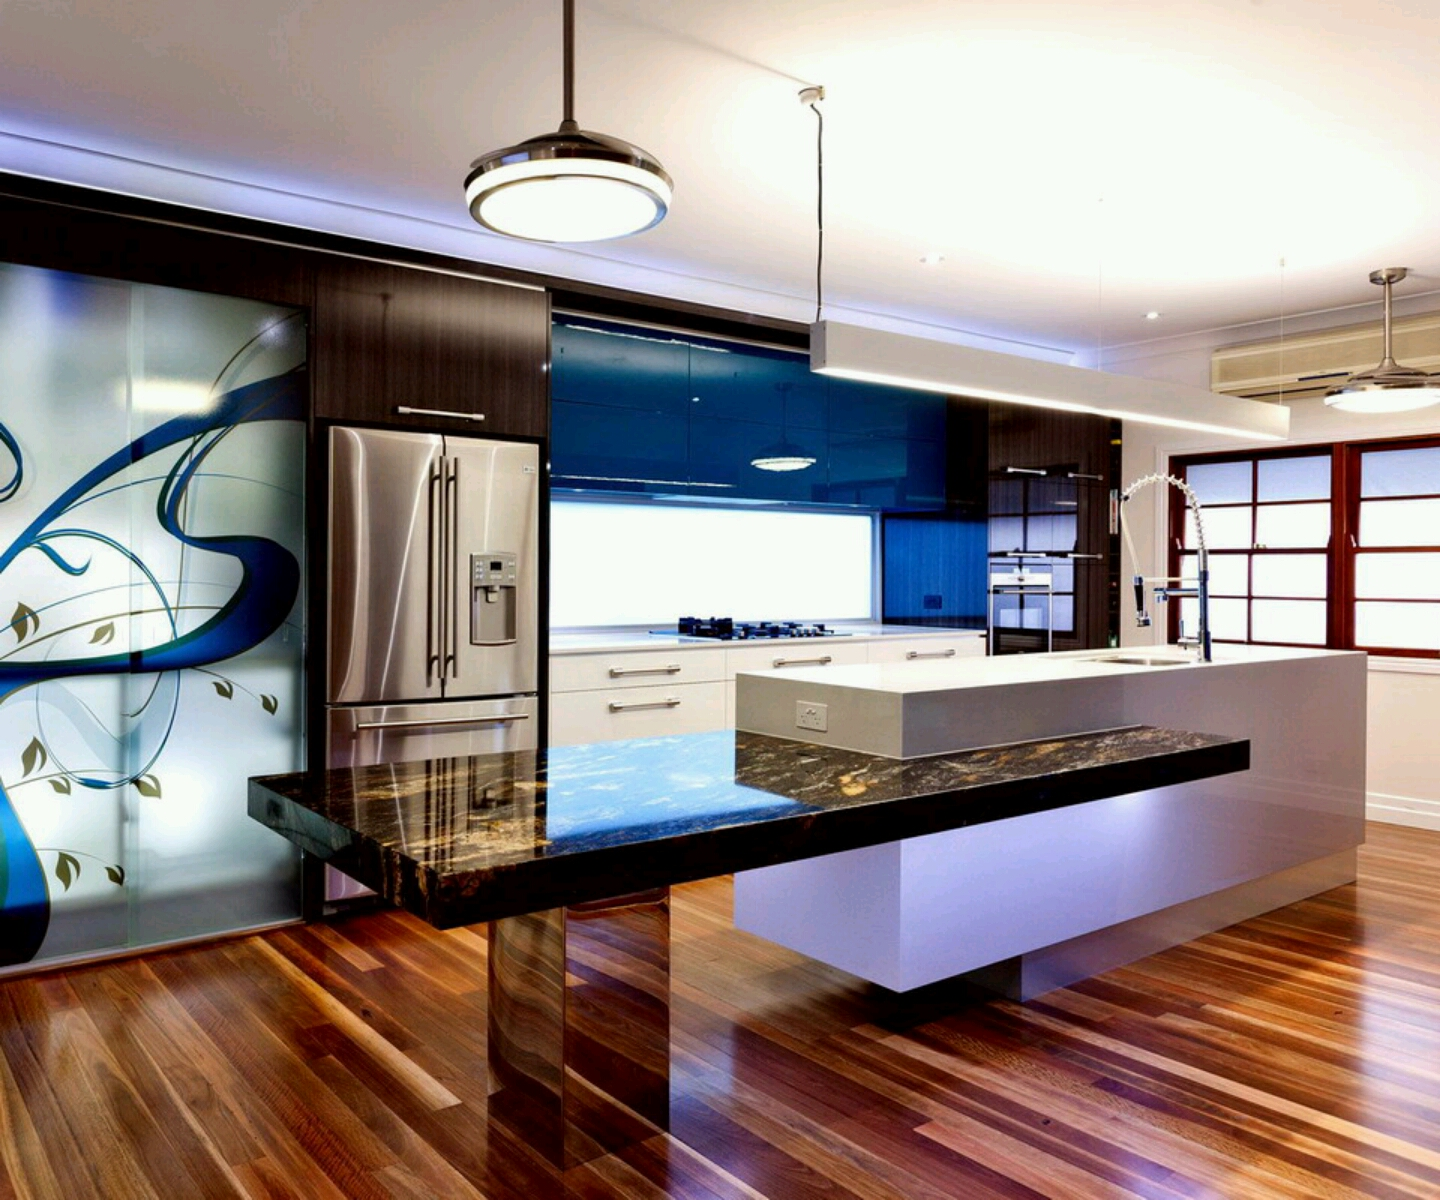 Ultra modern kitchen designs ideas new home designs for New kitchen remodel ideas